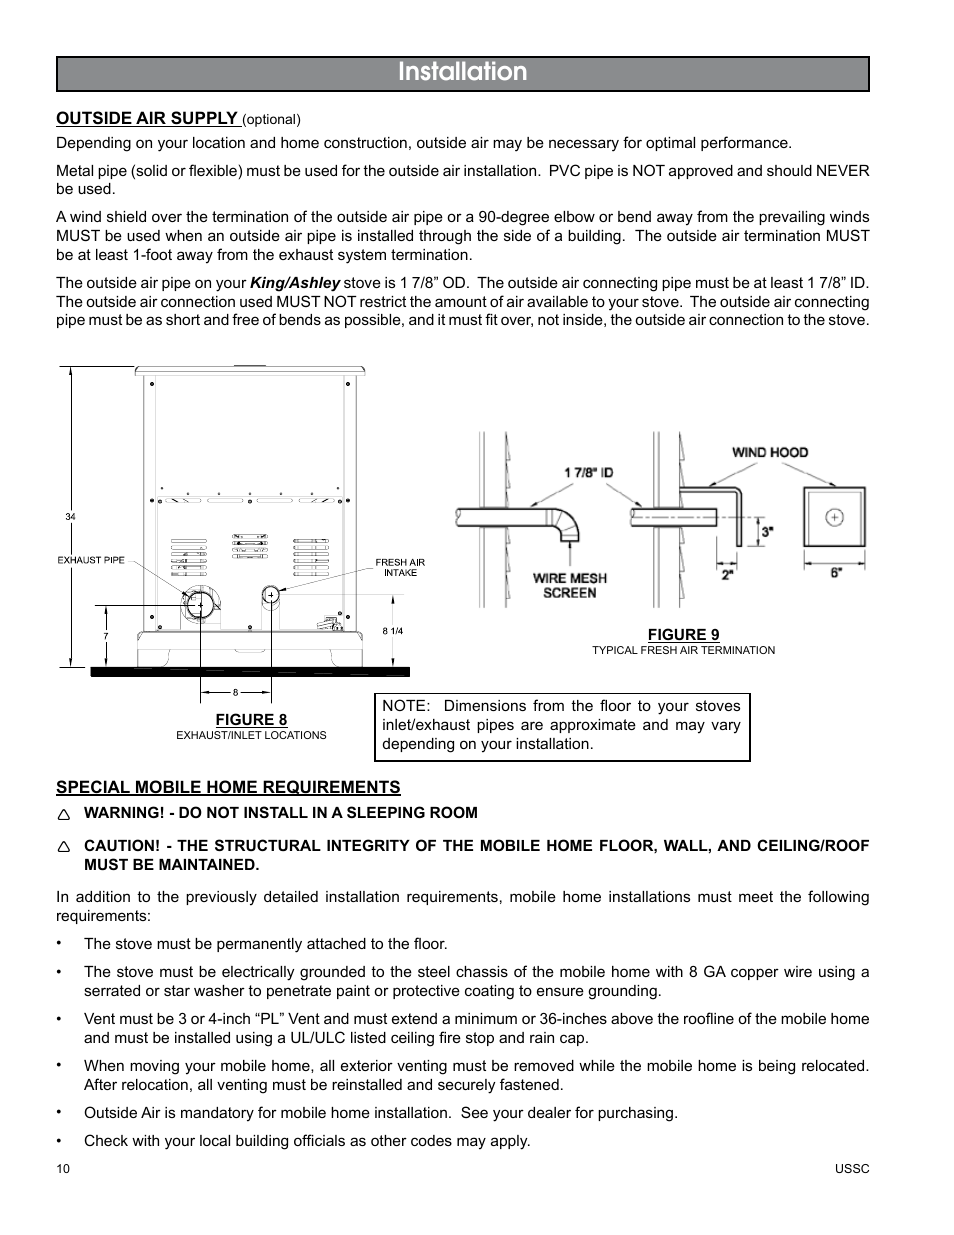 Installation | United States Stove Company KING/ASHLEY PELLET STOVE 5500M User  Manual | Page